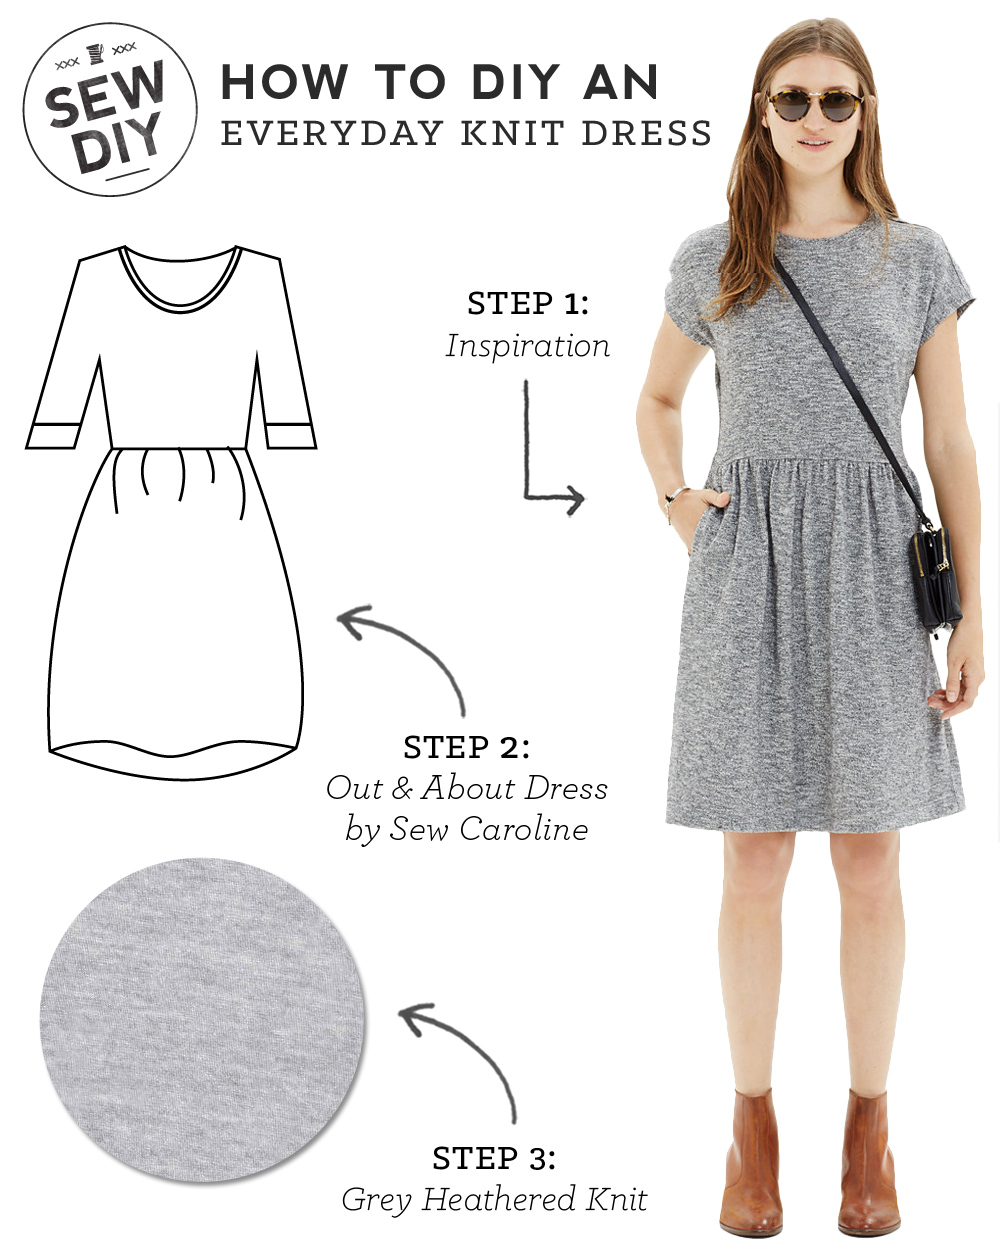 Knit Dress Sewing Pattern : DIY Outfit   Everyday Knit Dress   Sew DIY